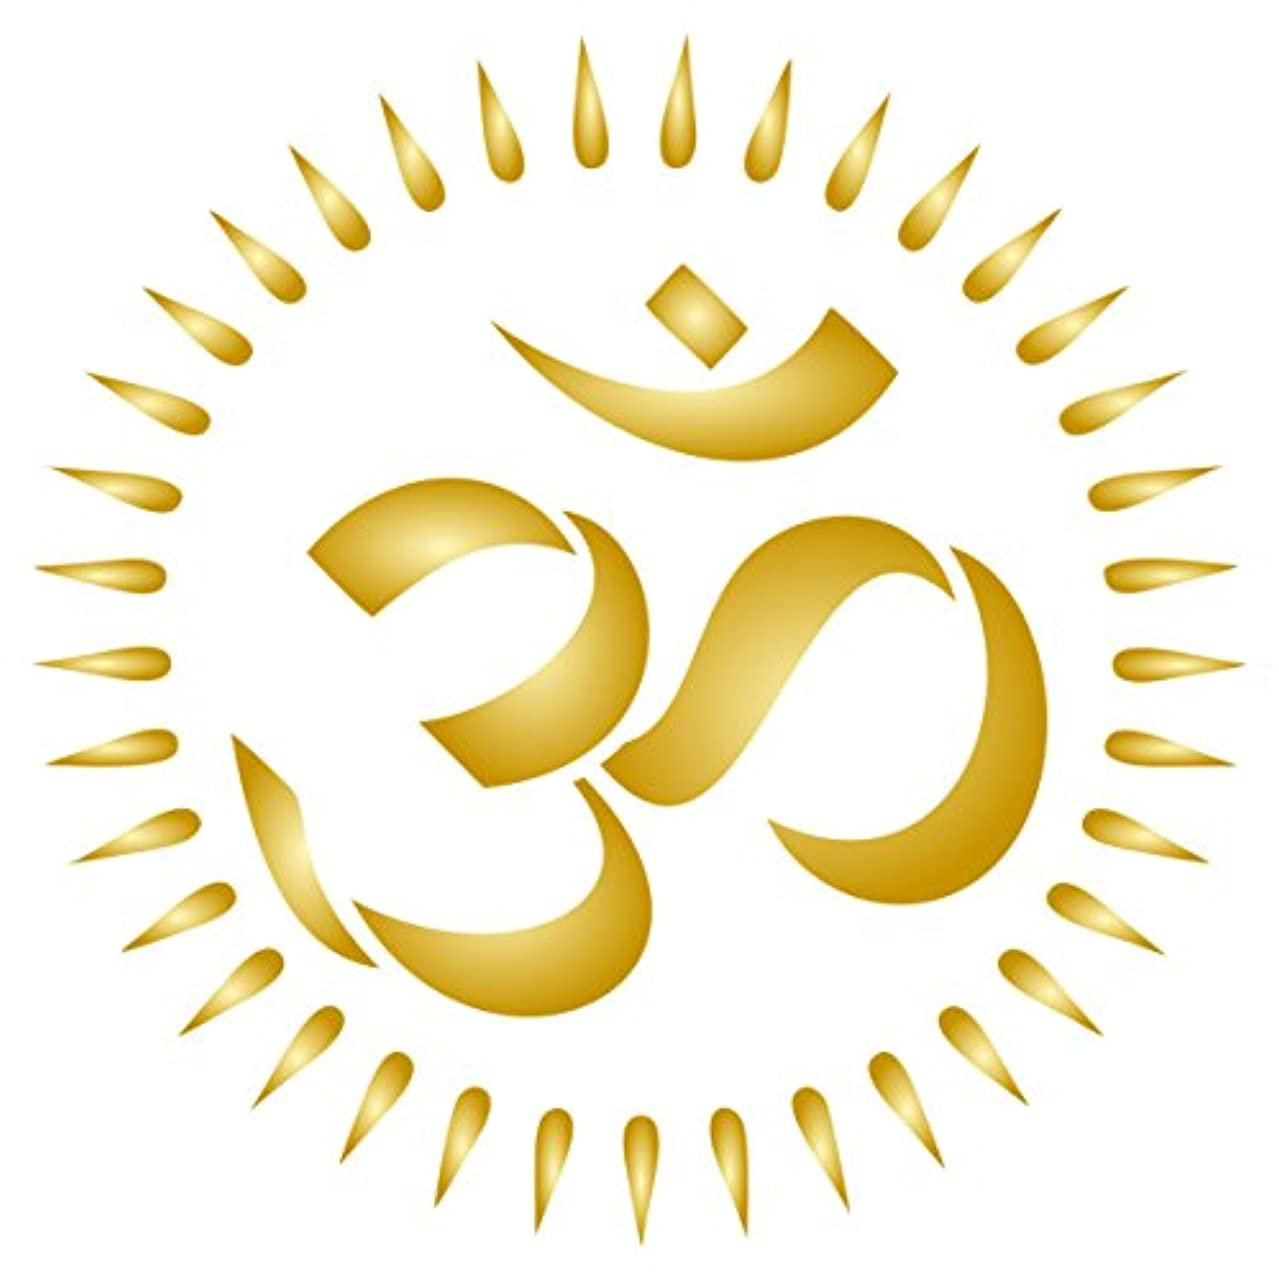 OM Stencil - 4.5 x 4.5 inch (M) - Reusable AUM Indian Mantra Sanskrit Hindu Spiritual Stencils for Painting - Use on Paper Projects Walls Floors Fabric Furniture Glass Wood etc.